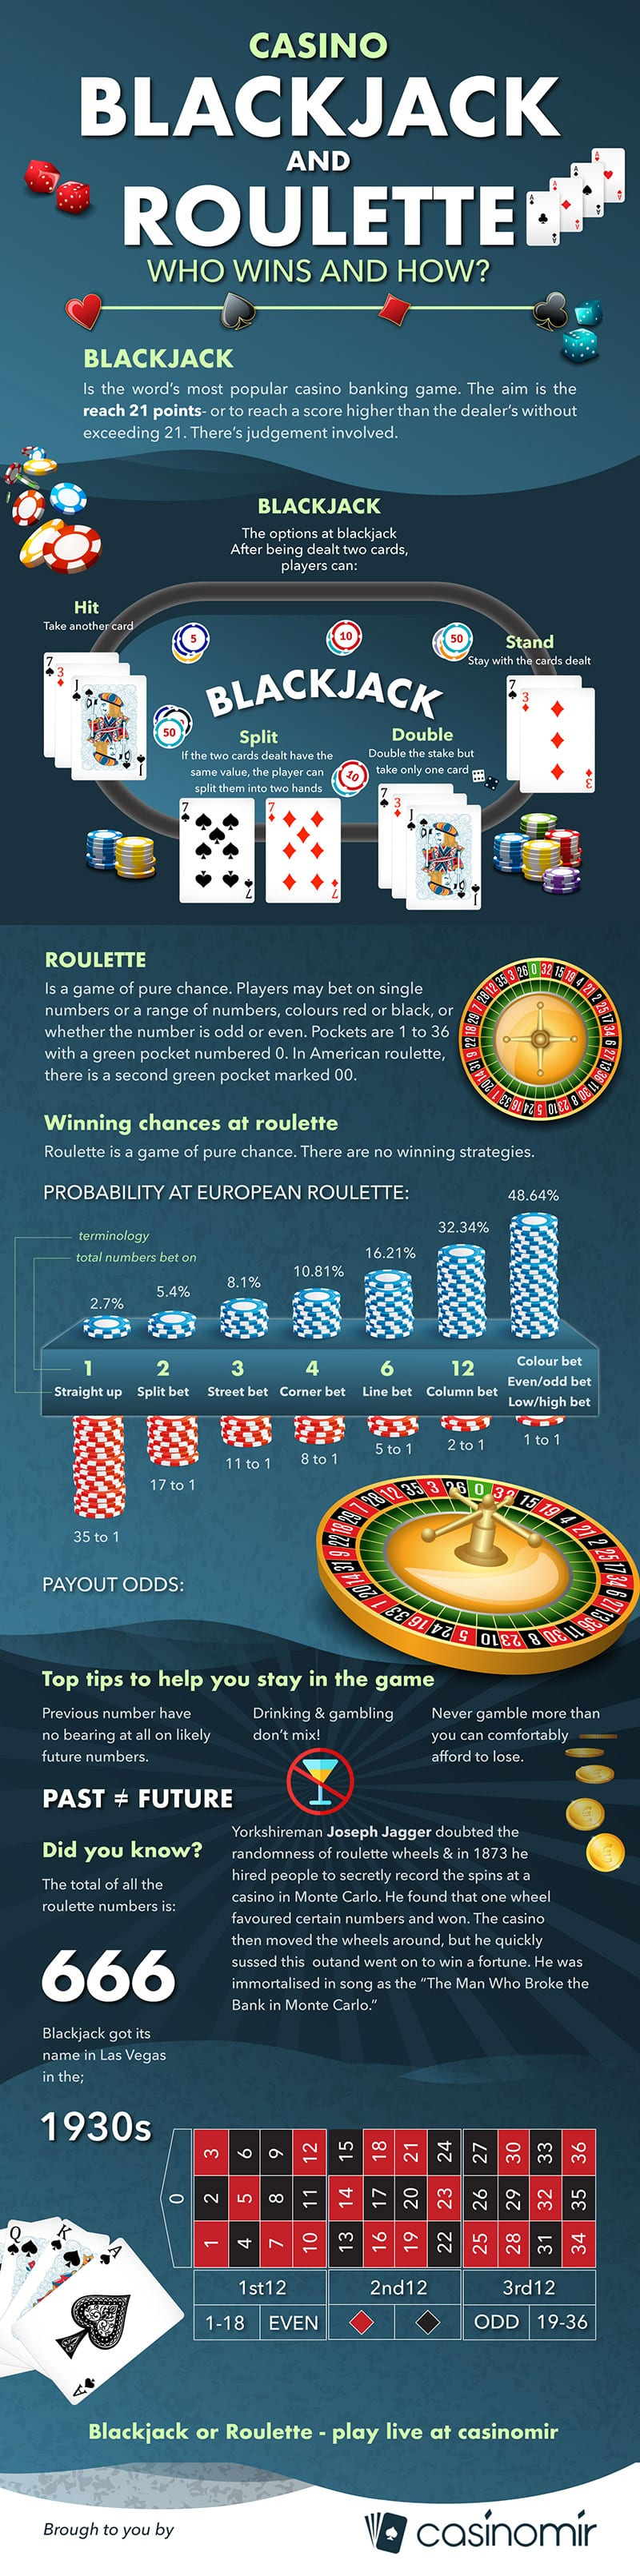 who wins and how in blackjack and roulette